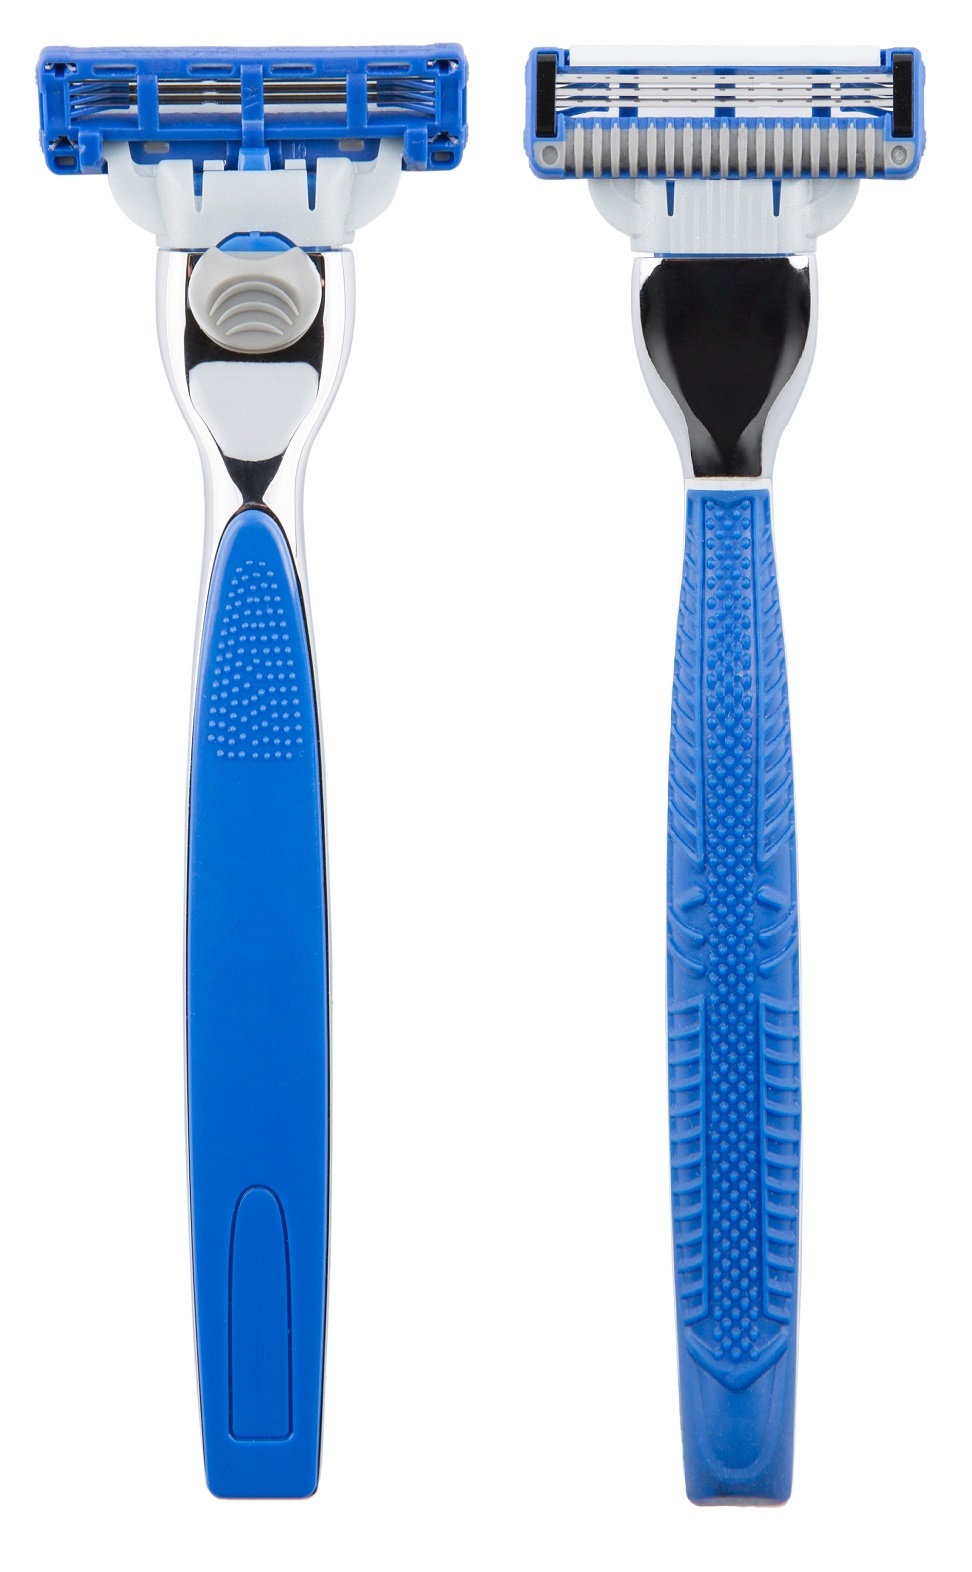 3 blade razors compatible with Gillette Mach 3